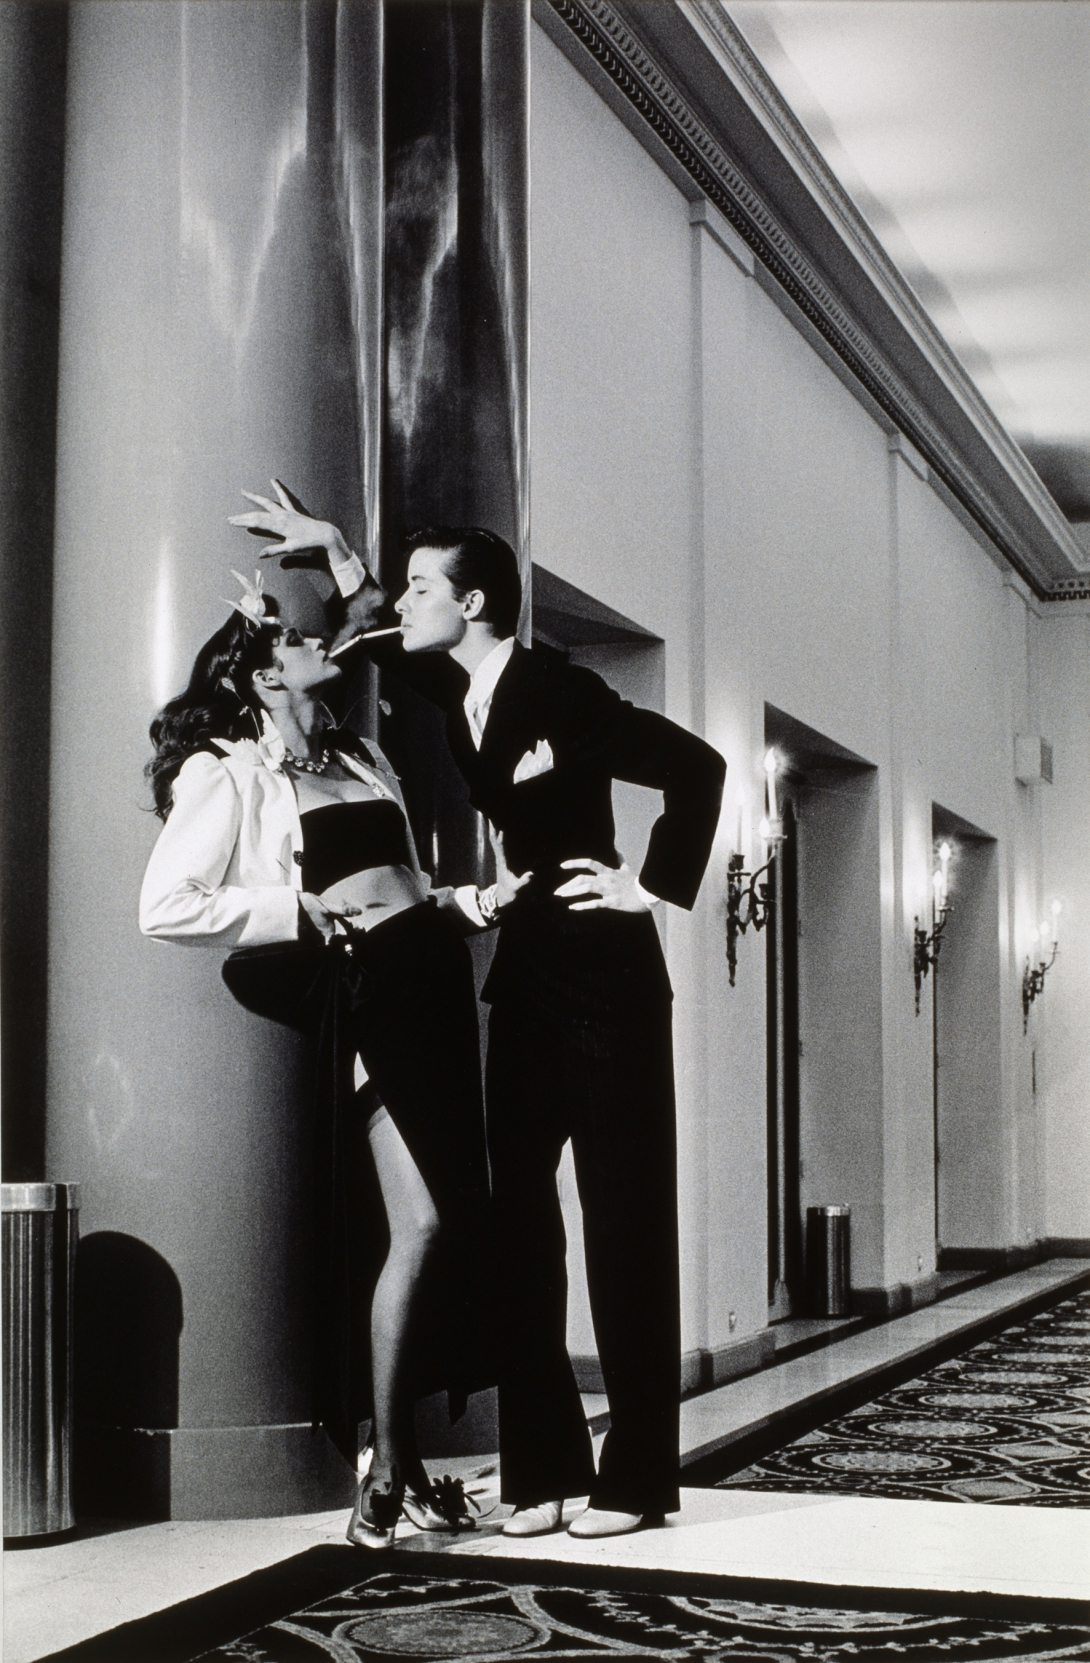 Vogue, Paris, Yves Saint Laurent - Woman into Man, lighting a ciga by Helmut Newton